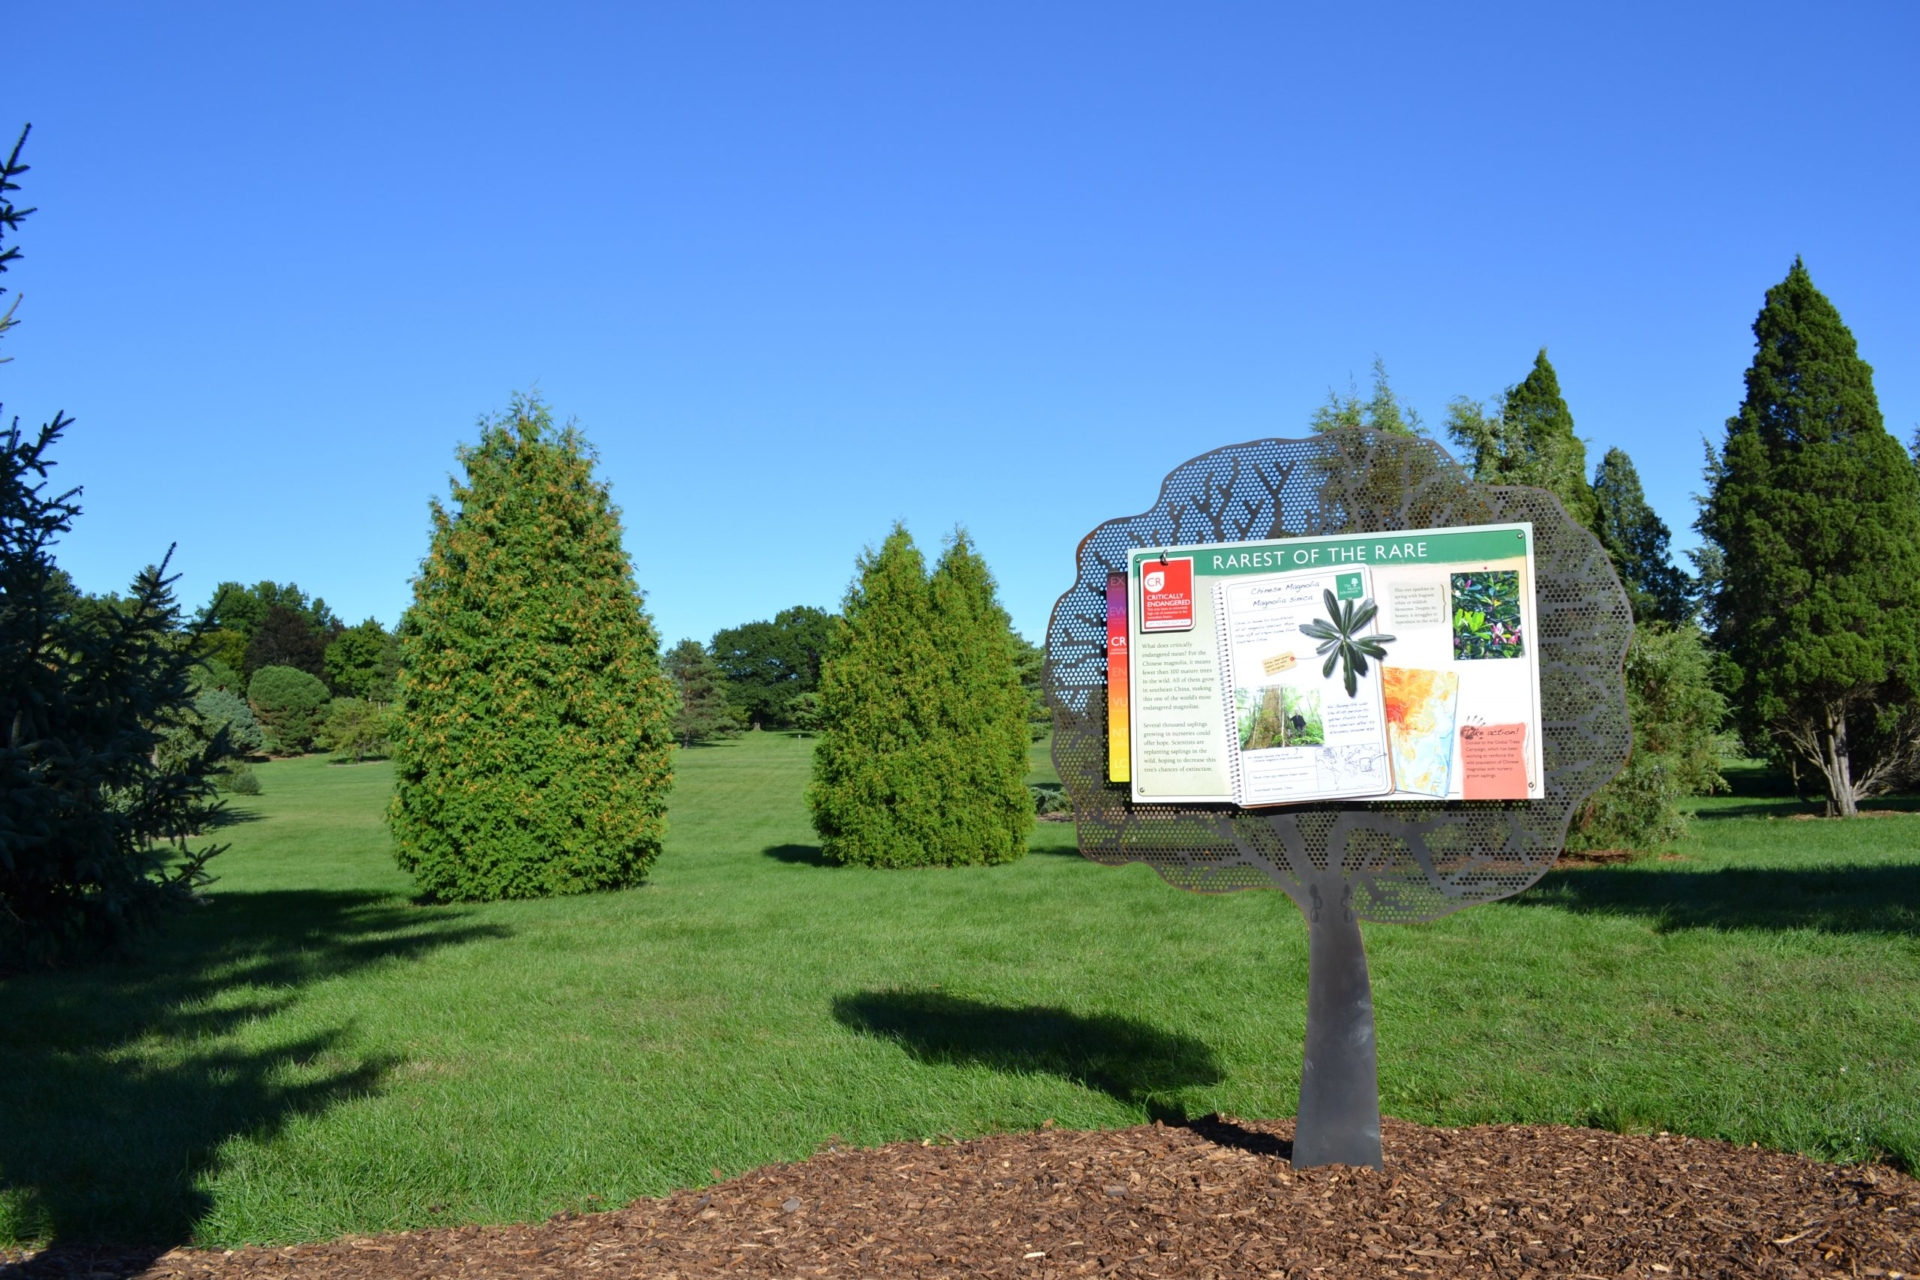 An interpretive panel of information about endangered trees in The Morton Arboretum's Vanishing Acts exhibit.